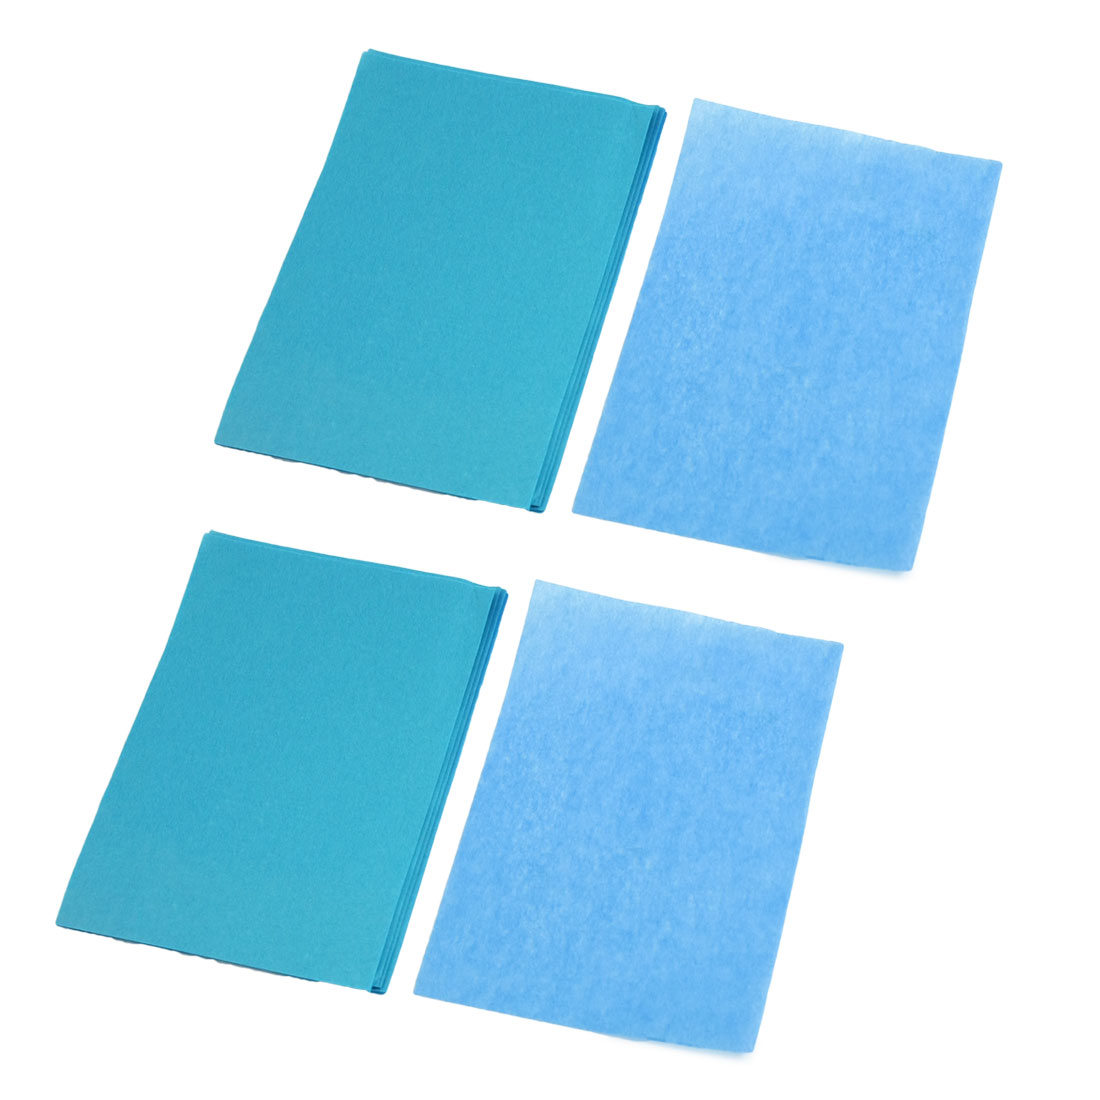 80 Sheets Facial Oil Blotting Film Paper Beauty Tool Blue